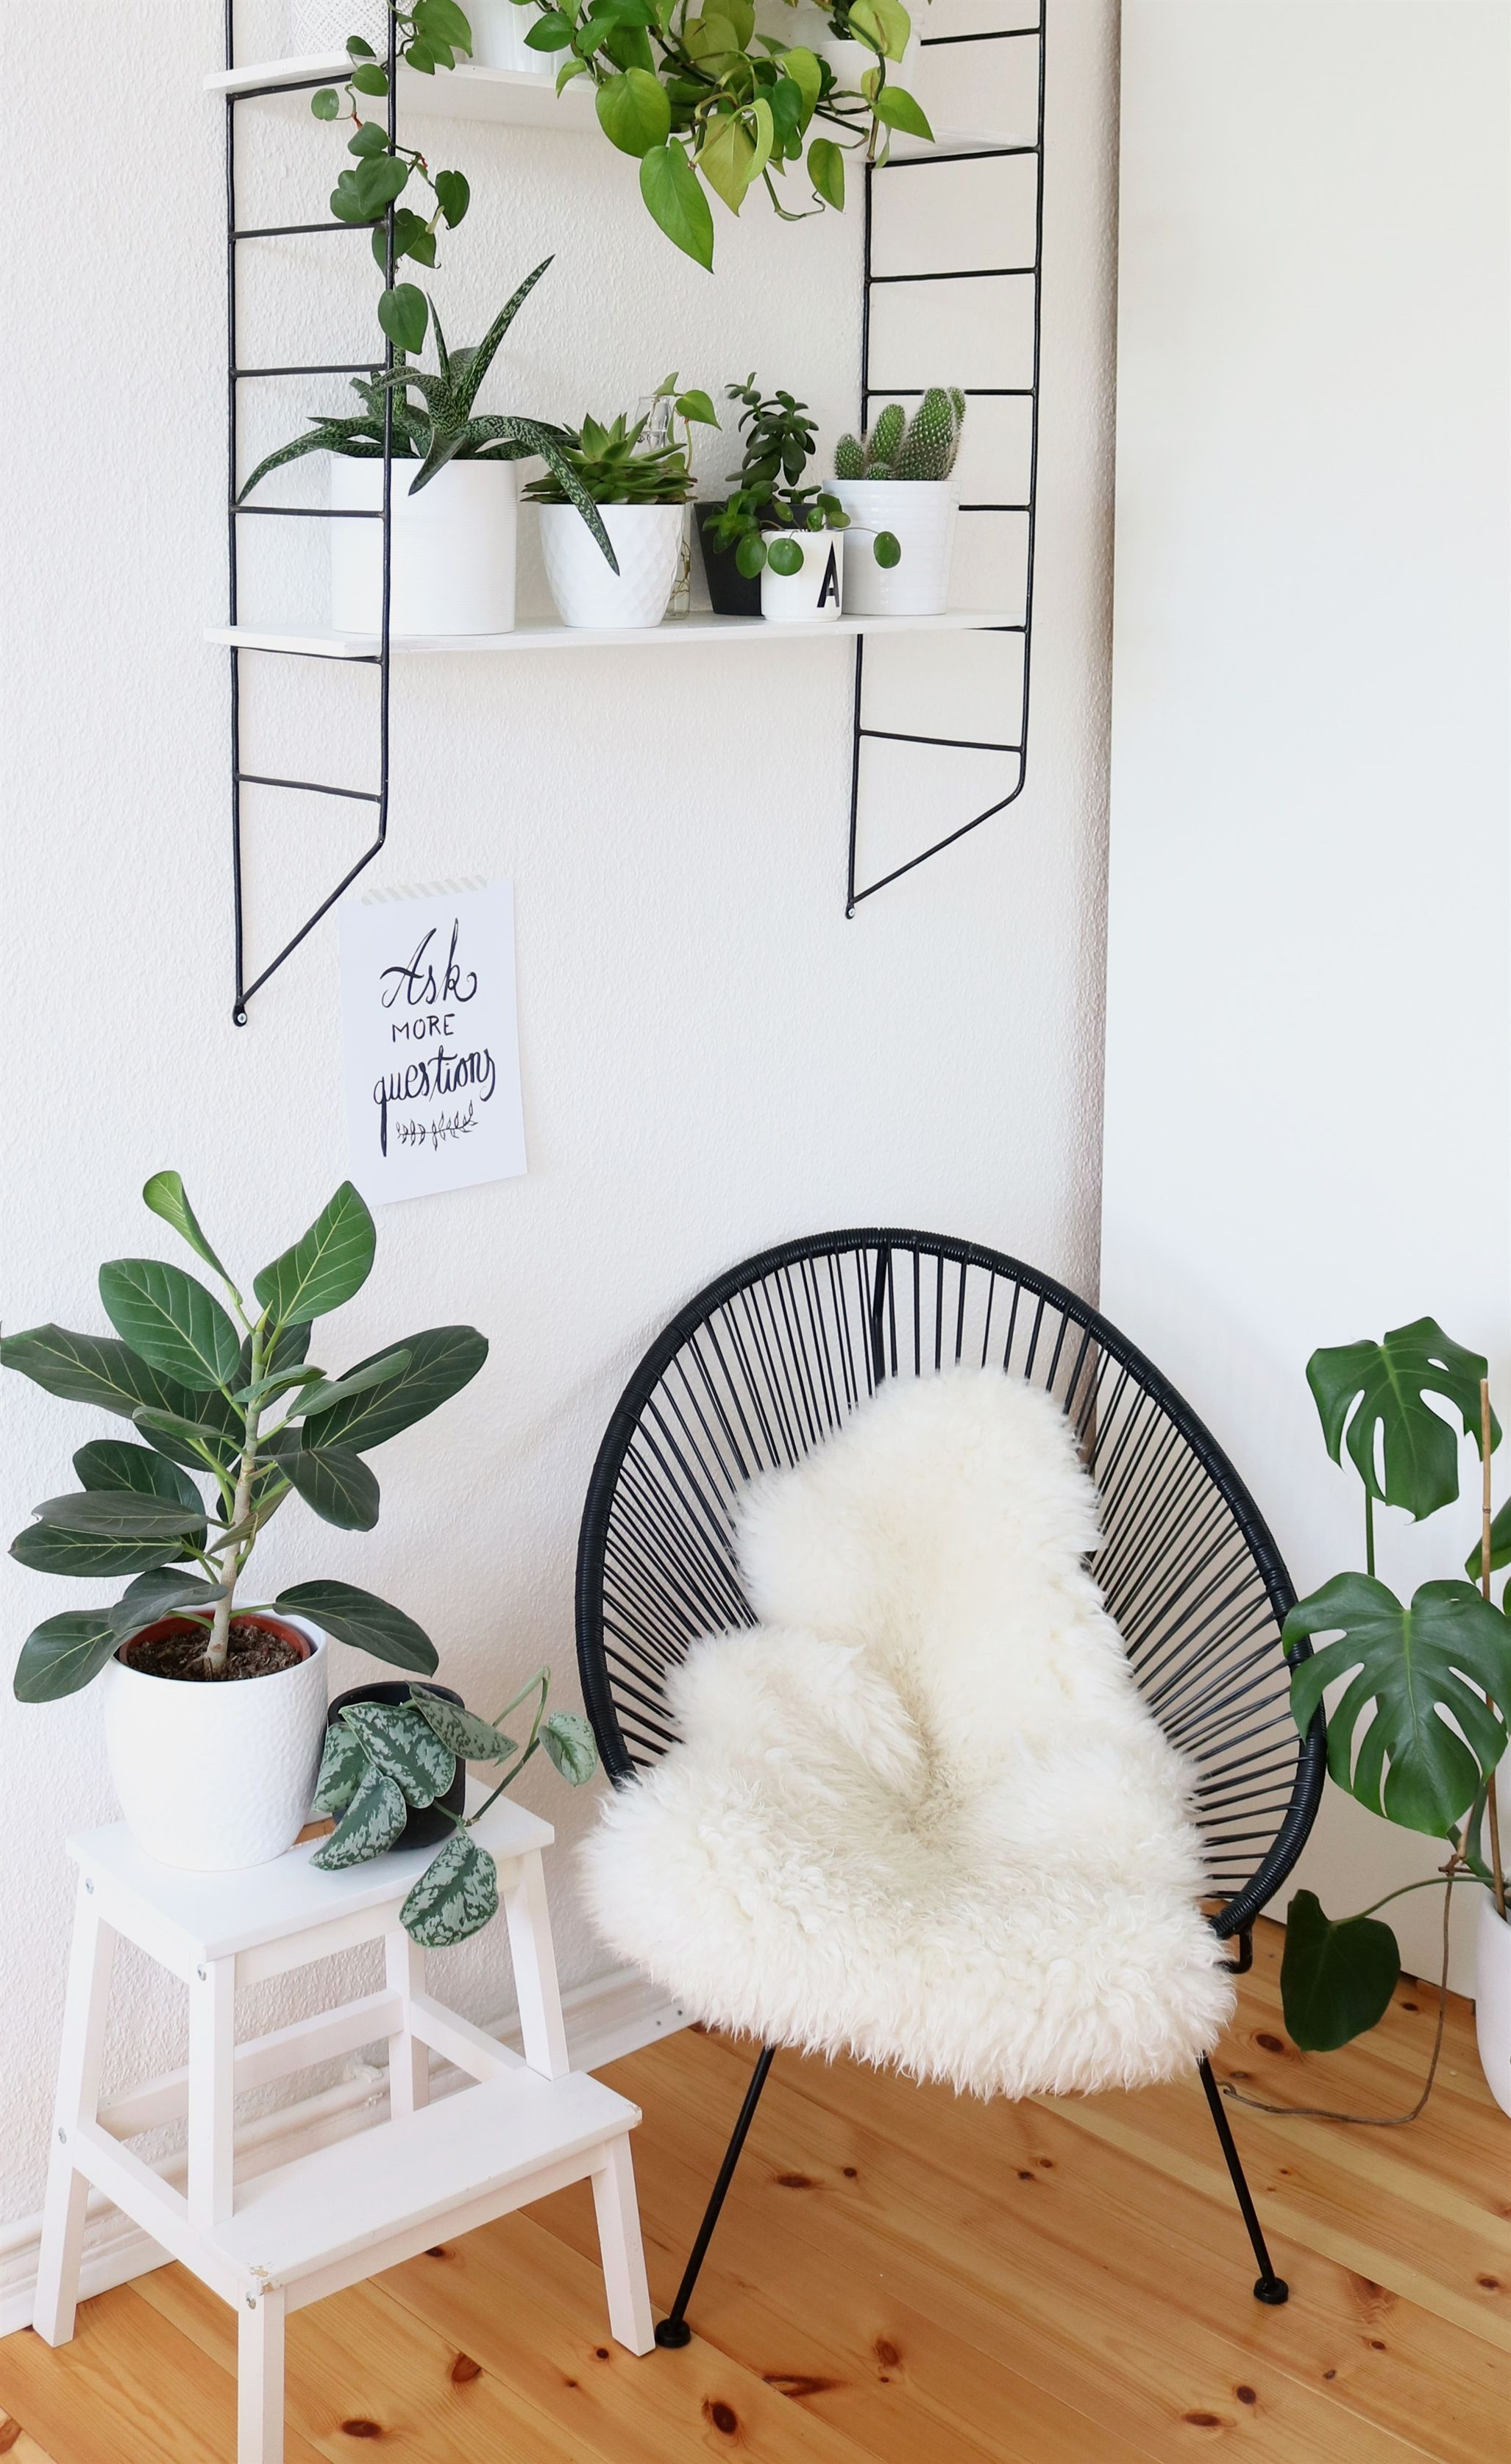 Urban Jungle Decorating Kitchen: Urban-jungle-ecke-im-schlafzimmer-2 #BedroomDecor